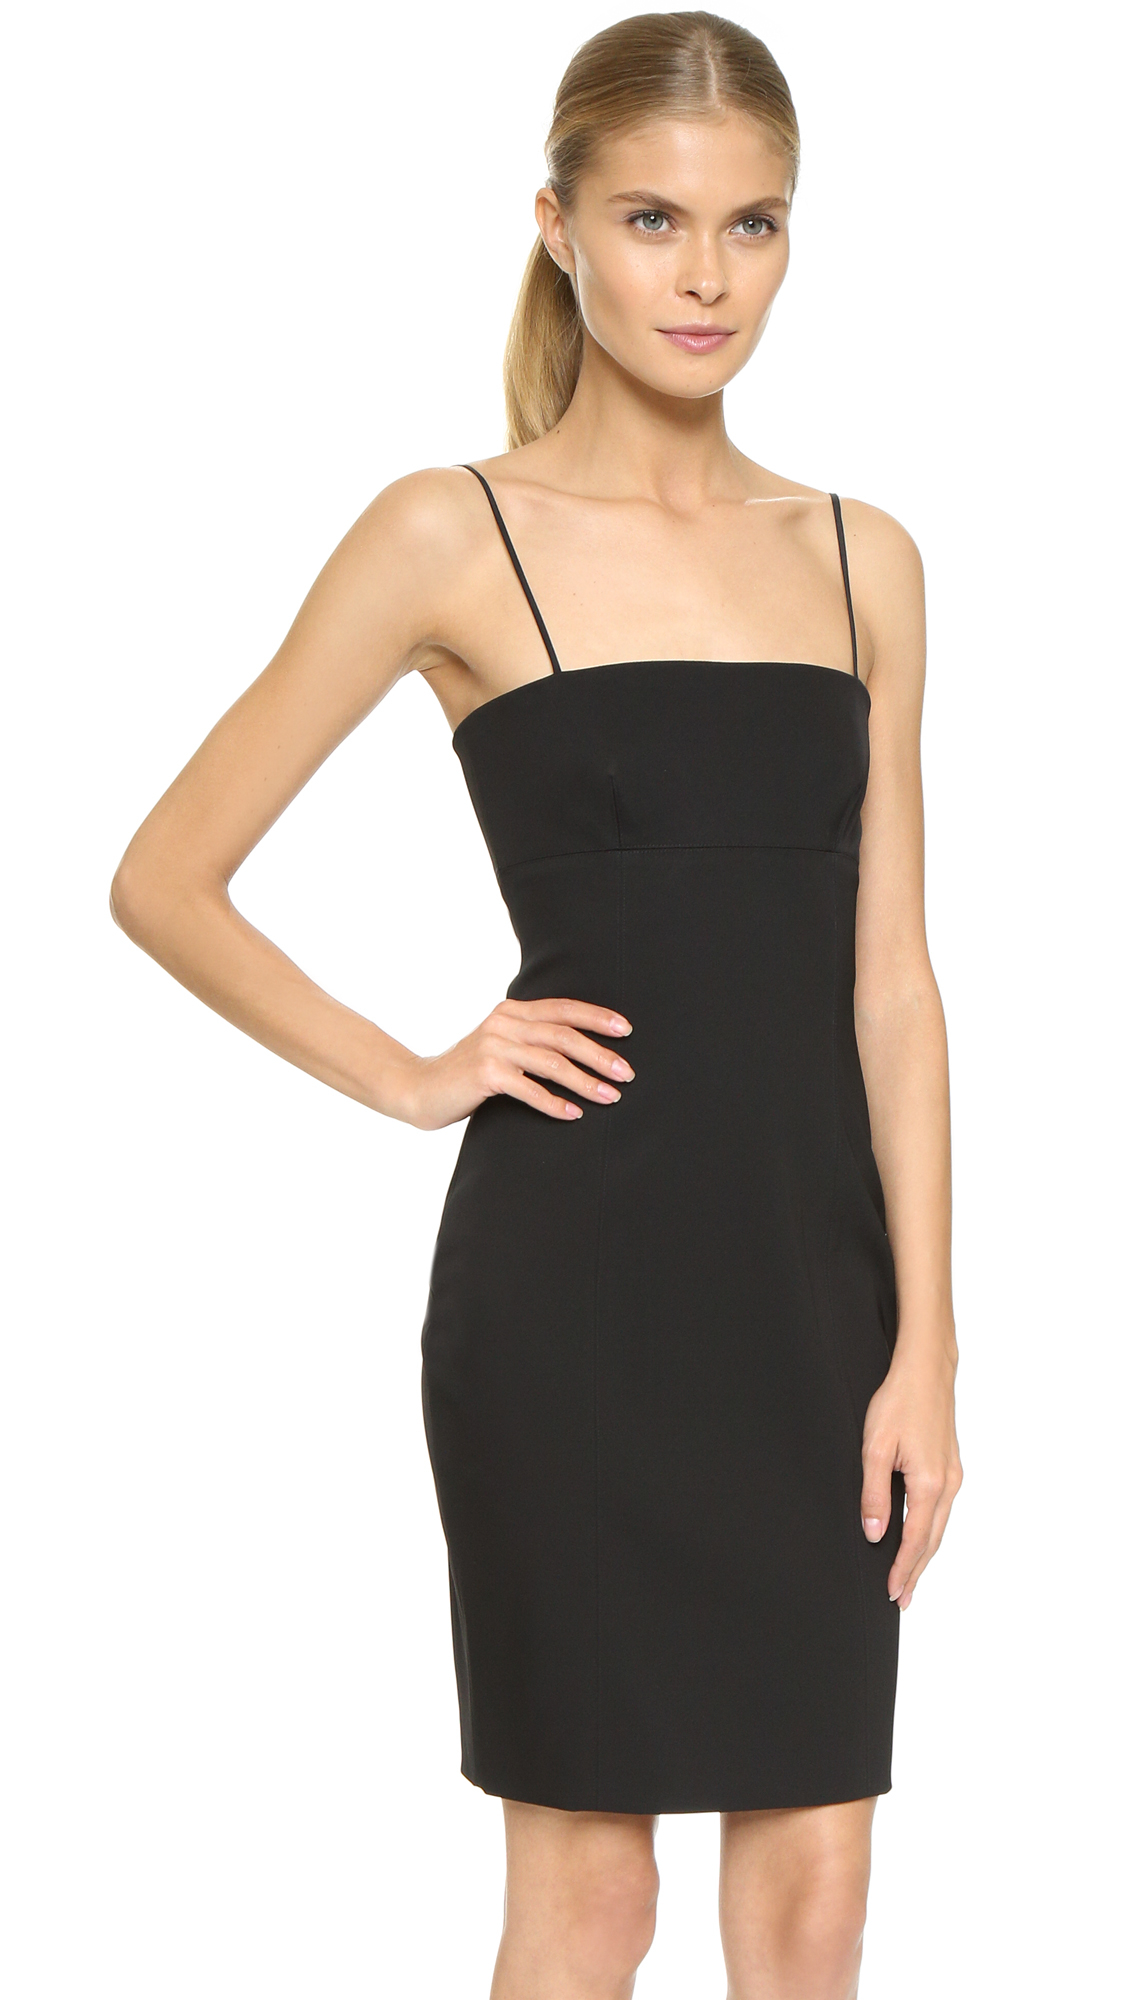 Alexander wang Fitted Knit Panel Dress - Nocturnal in Black | Lyst